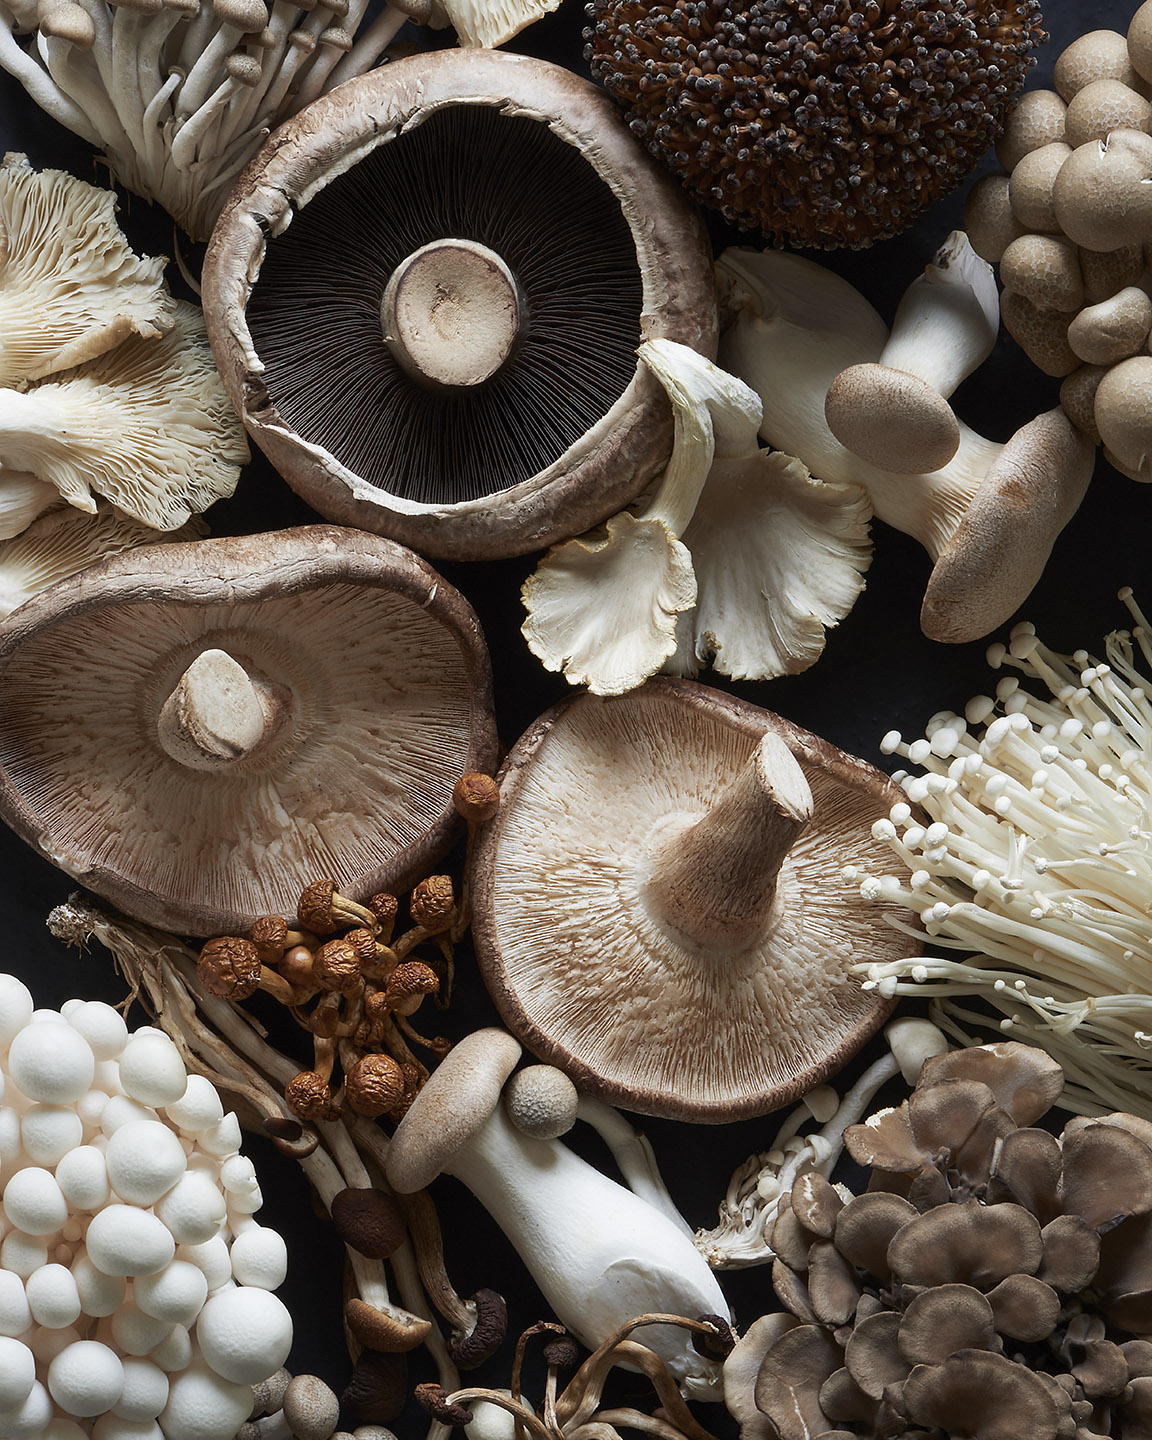 Raw Mushrooms by Matthew Roharik Editorial Food Photographer Los Angeles